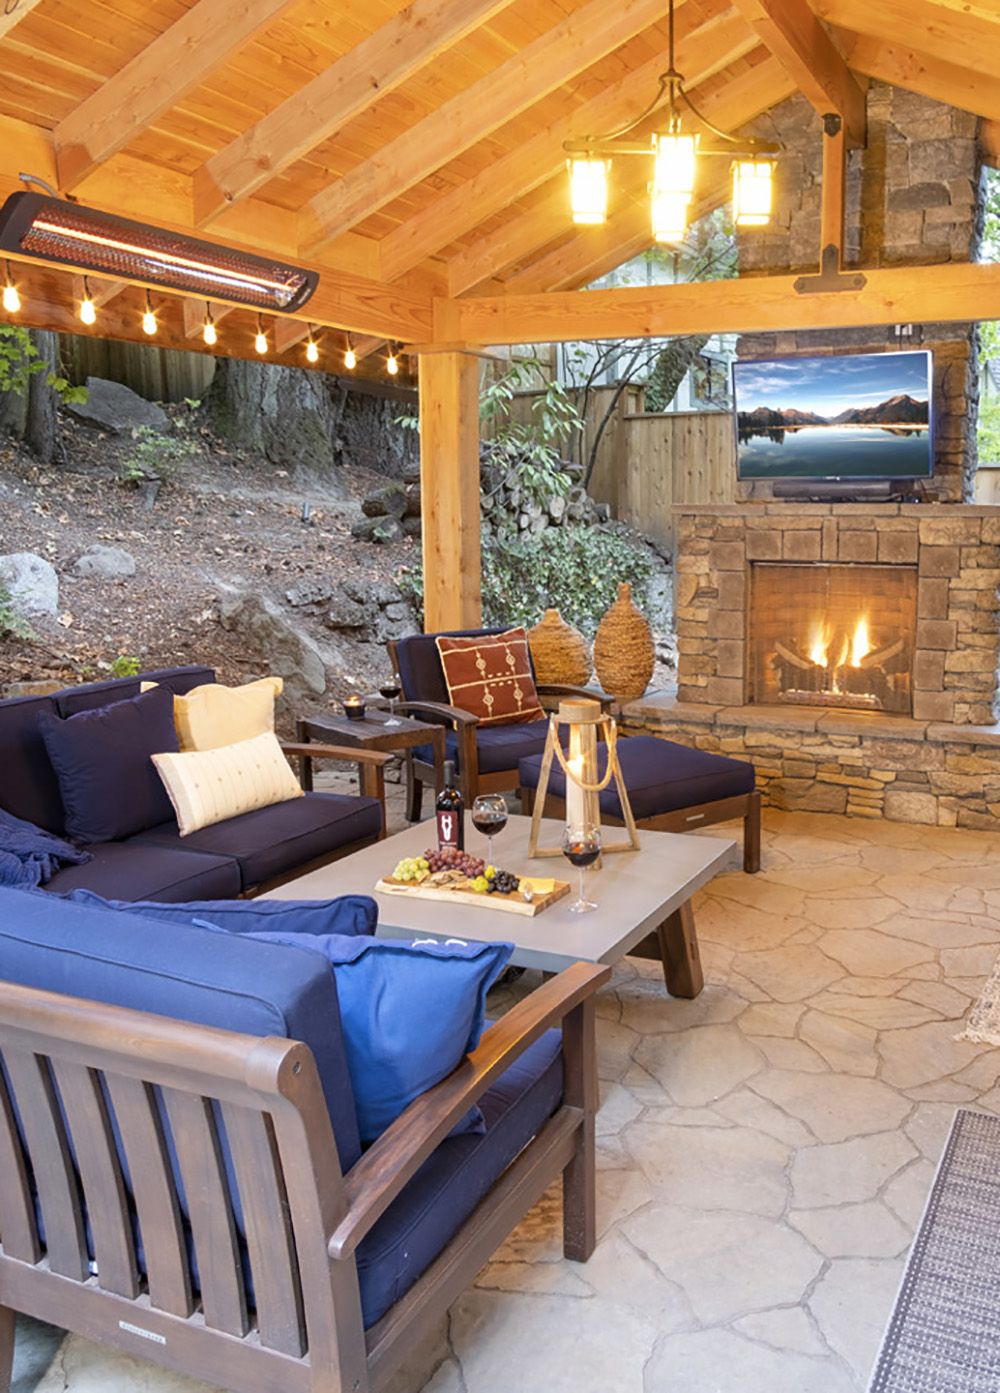 Backyard Renovation Paradise Restored Landscaping In 2020 Cozy Living Spaces Backyard Renovations Cozy Living